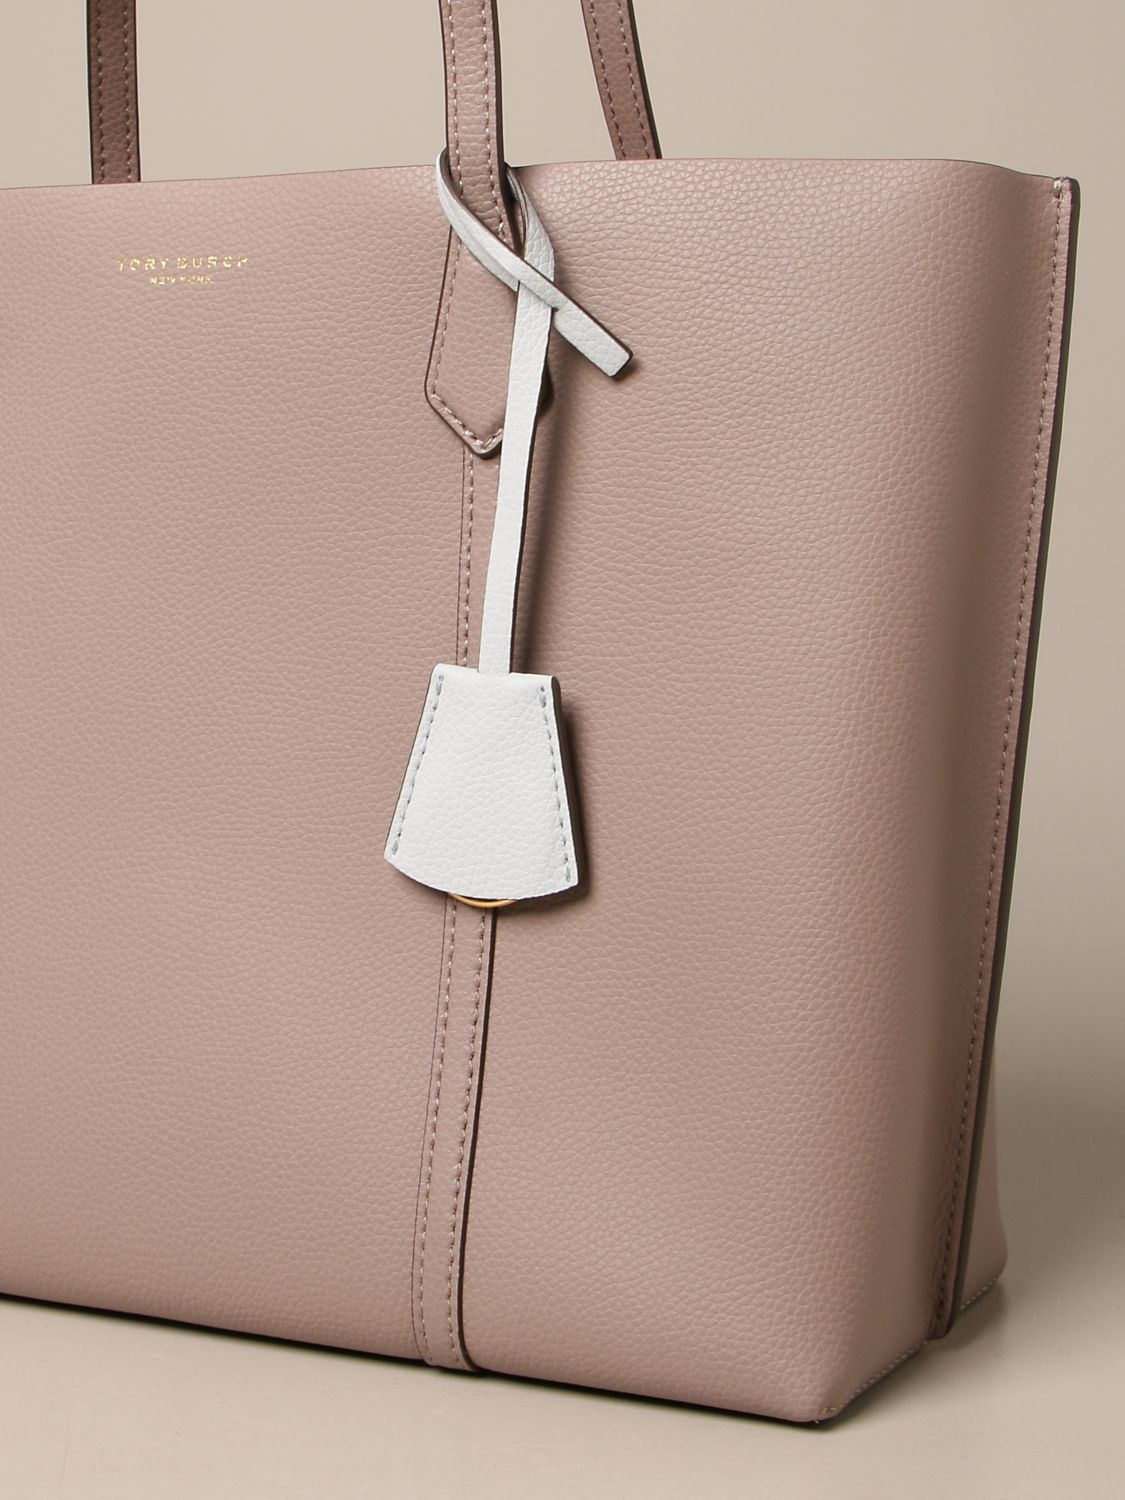 Handbag Tory Burch: Perry Tory Burch bag in textured leather grey 3